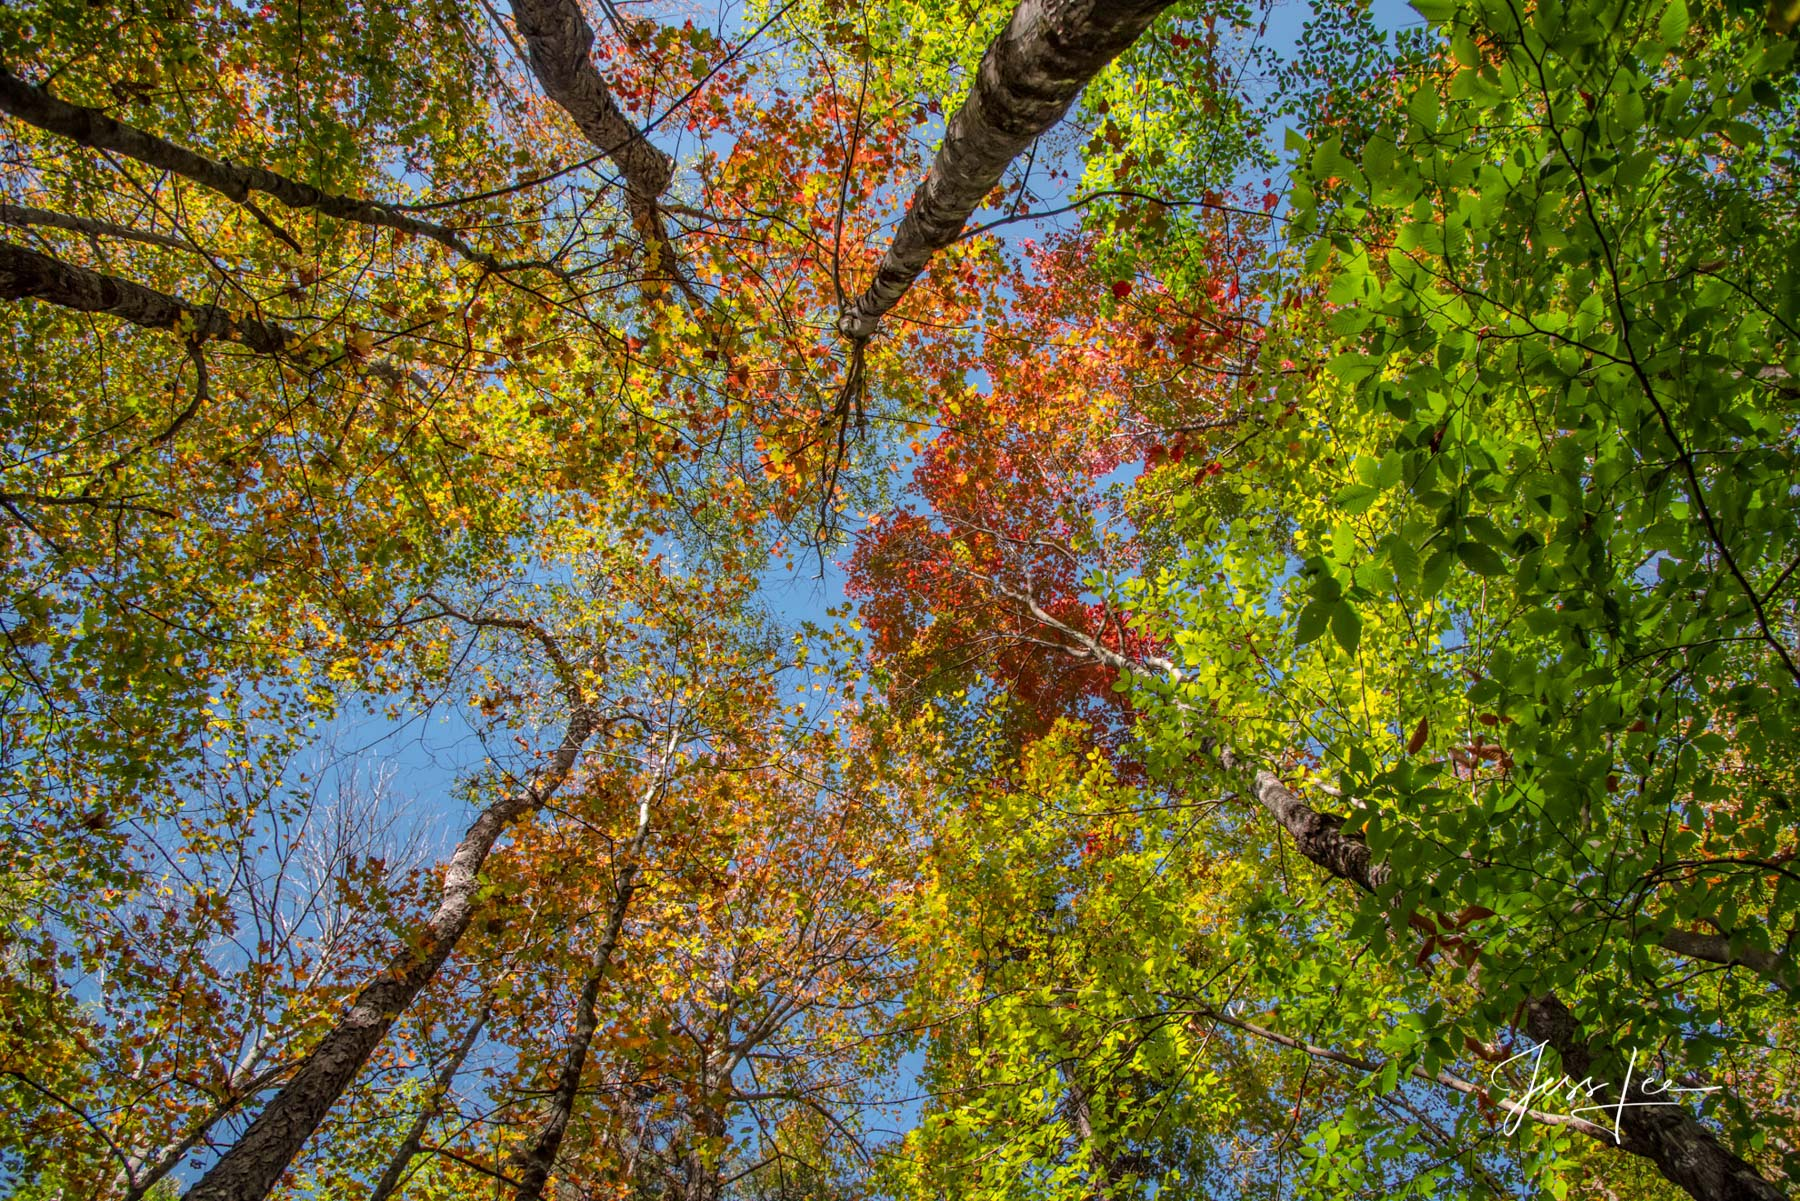 Fine Art Limited Edition of 200 Exclusive high-resolution Museum Quality Prints of Looking up at New England Autumn trees. Photo...